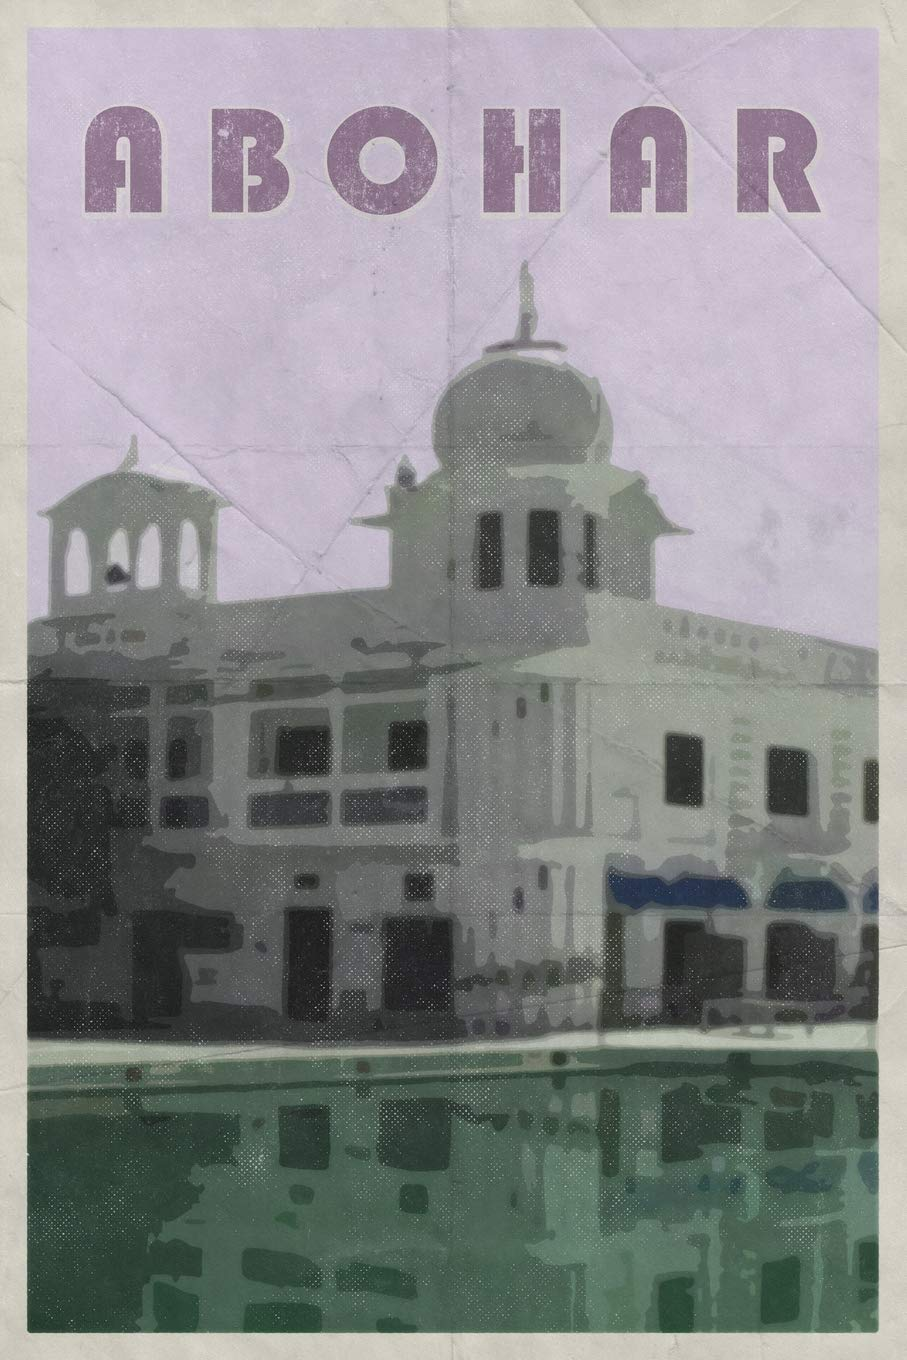 Buy Abohar Fazilka Punjab Indian Daily Notebook Journal Diary Notepad Book Online At Low Prices In India Abohar Fazilka Punjab Indian Daily Notebook Journal Diary Notepad Reviews Ratings Amazon In